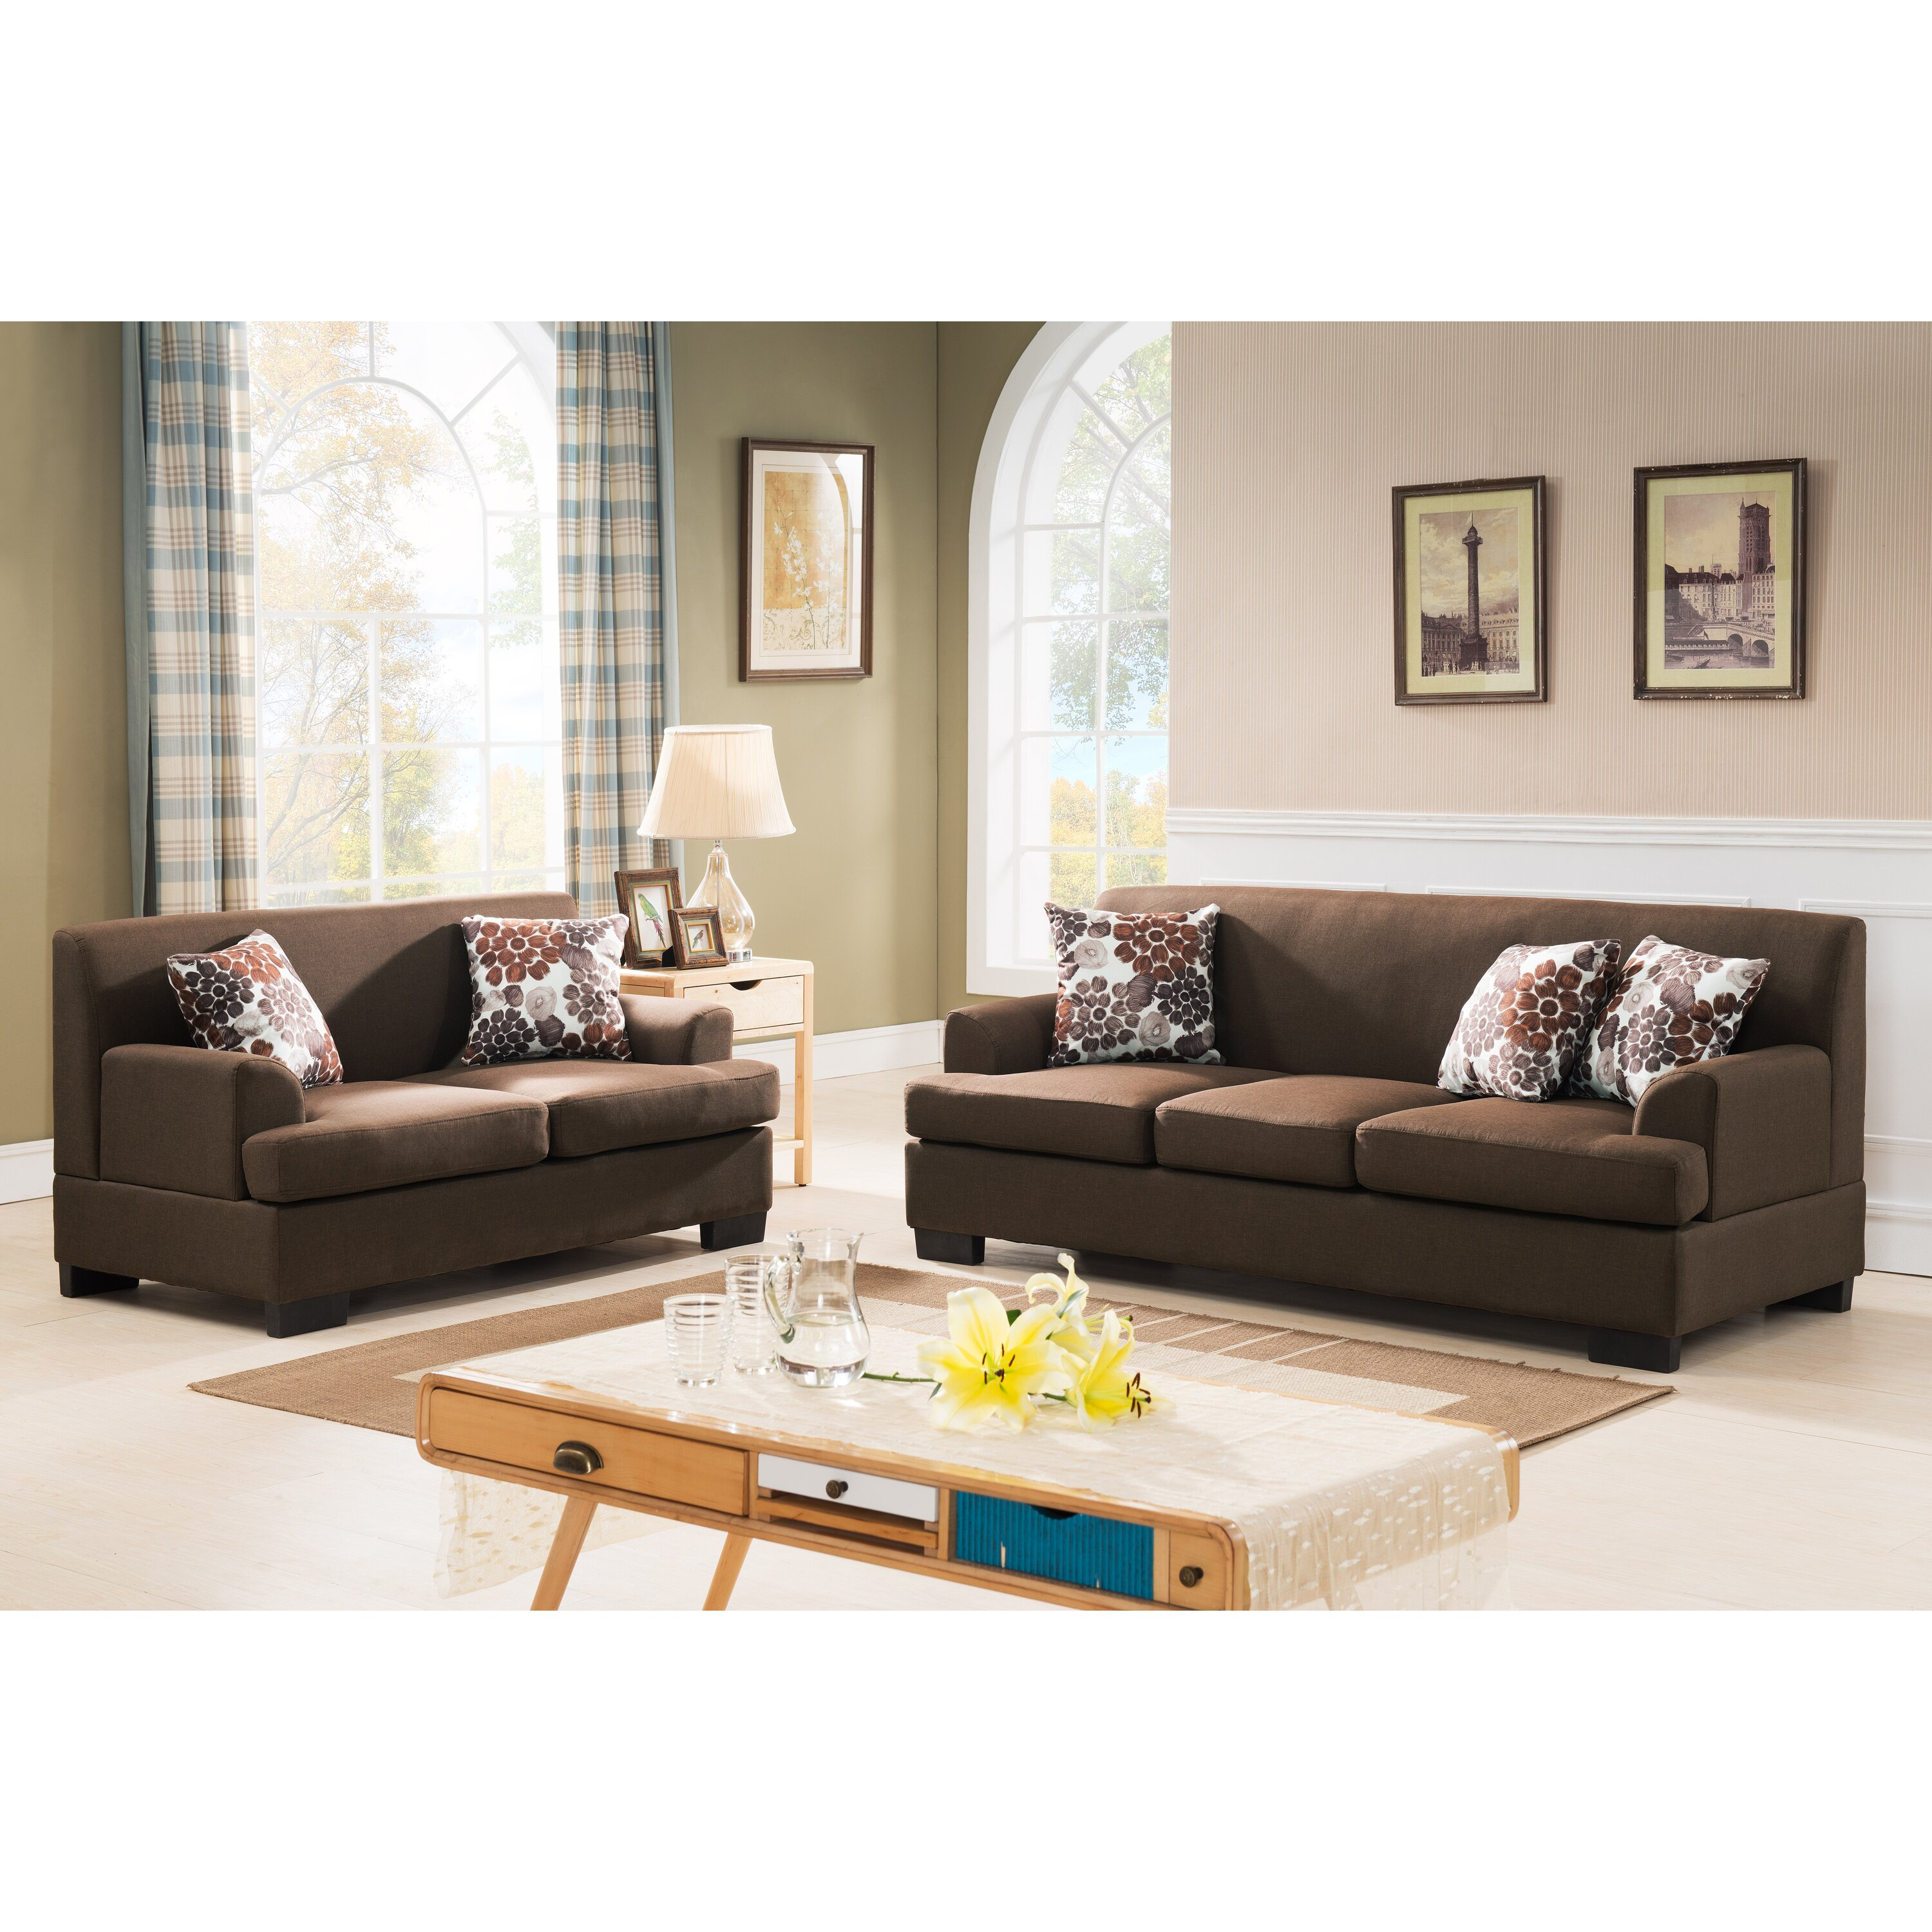 Container modern fabric 2 piece sofa and loveseat set for 2 piece sofa set